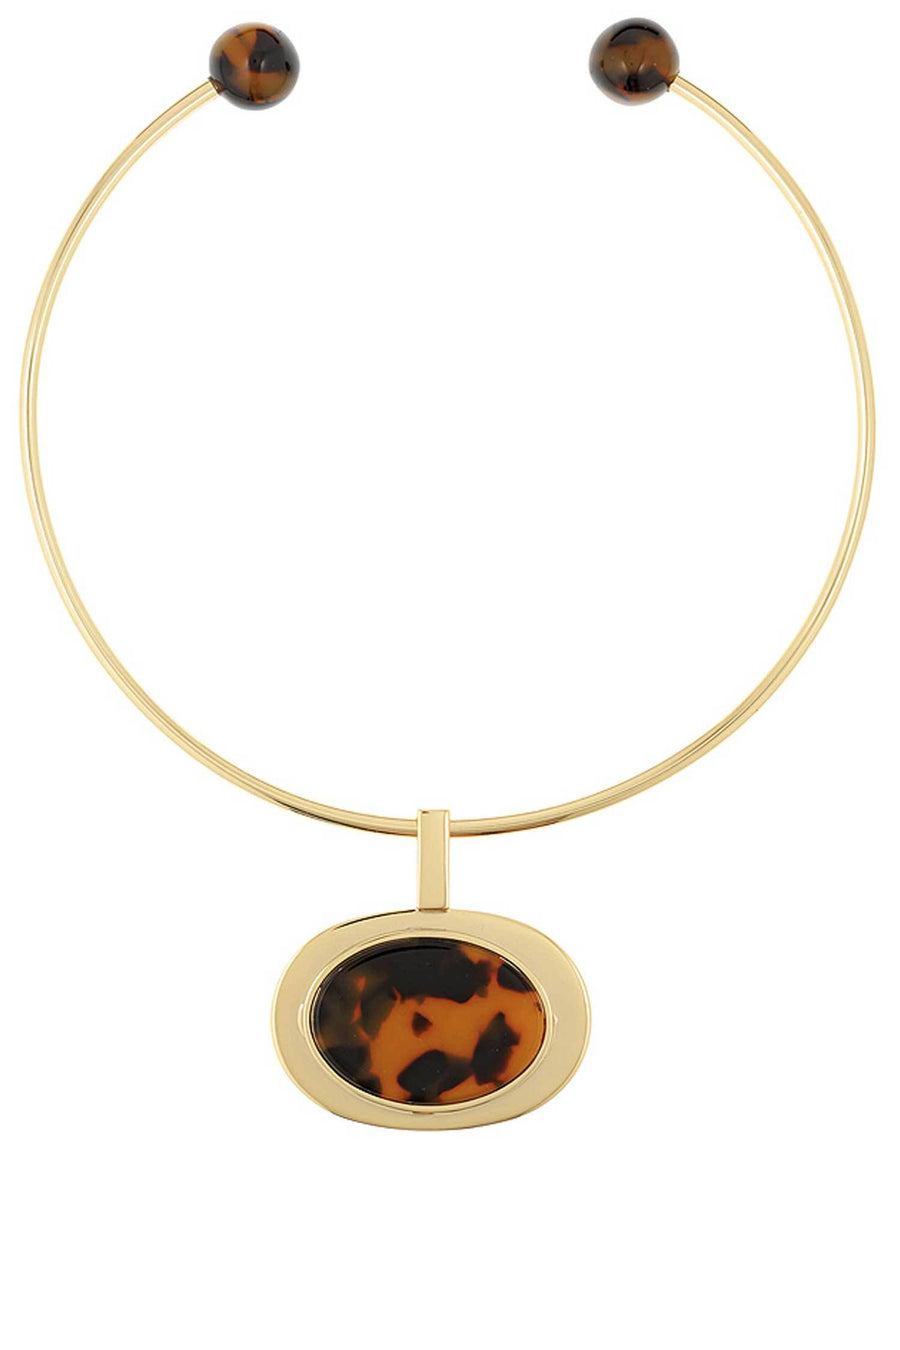 Shop Online Arianna Neckplate by Peter Lang | Frockaholics.com Accessories